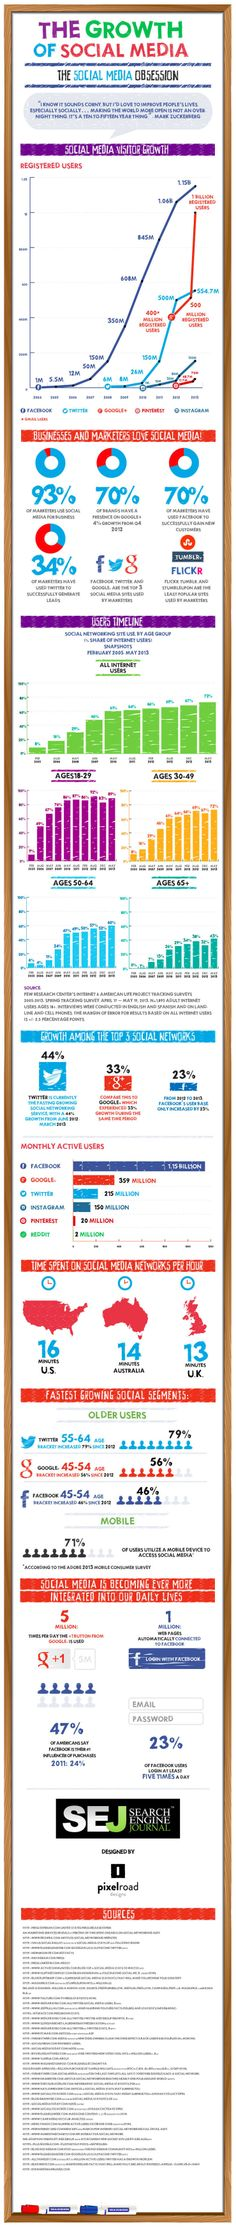 The Growth and Obsession of Social Media Management an infographic /@Ber|Art Visual Design V.O.F.